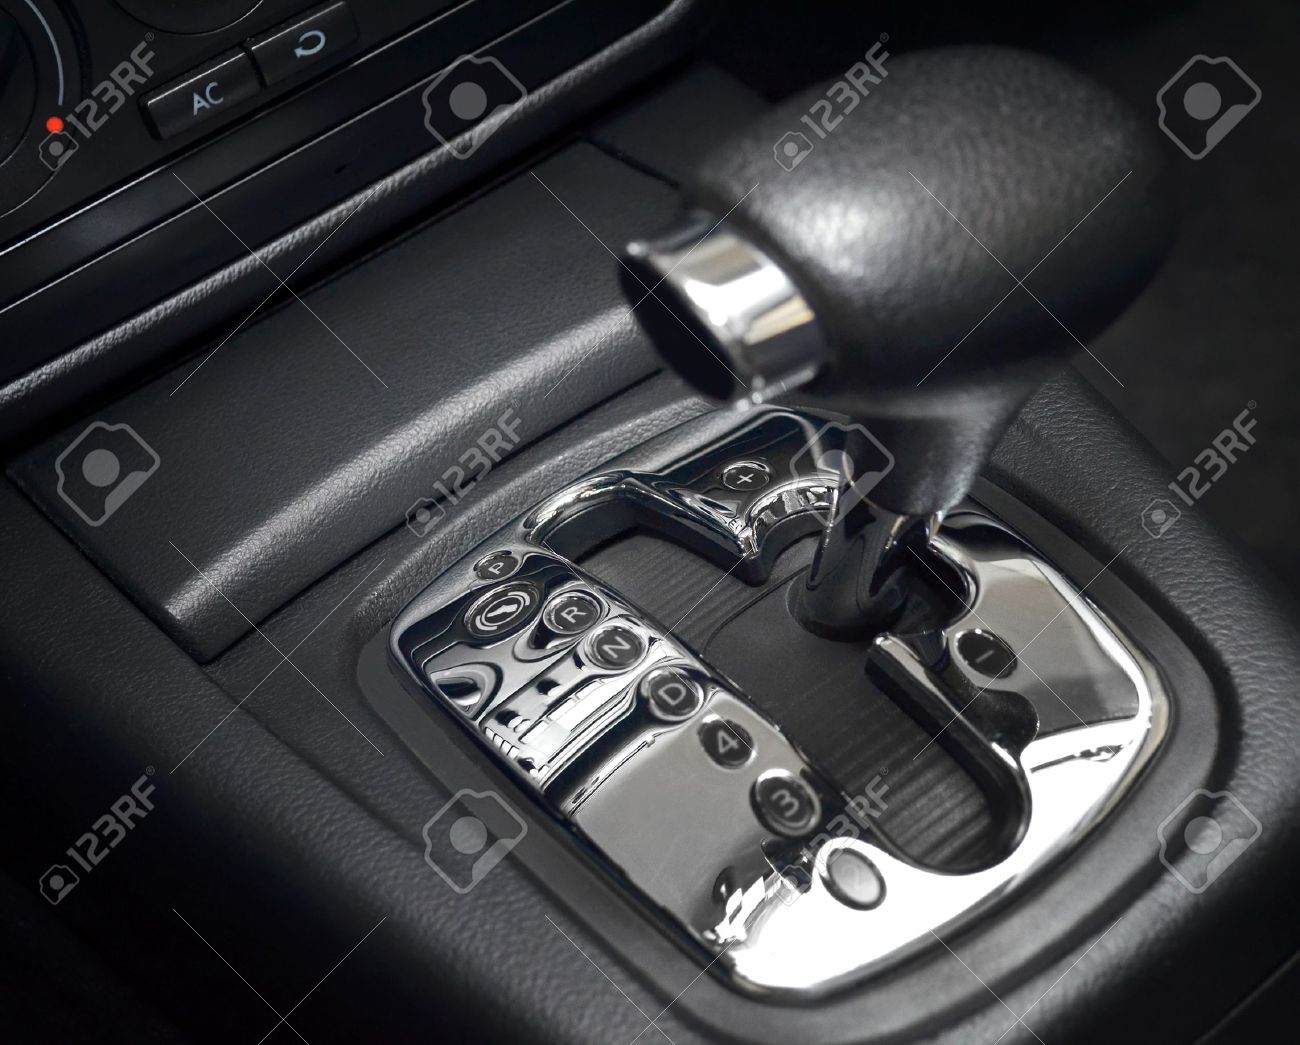 Automatic gear shift, manual mode, close up